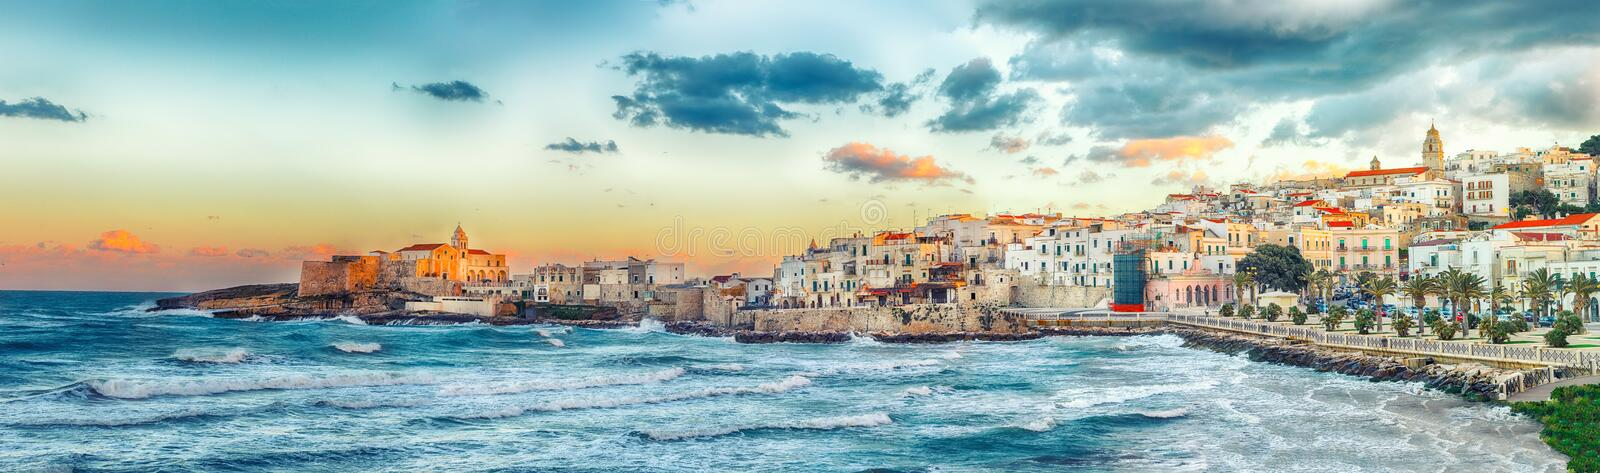 Historic central city of the beautiful town called Vieste royalty free stock photography